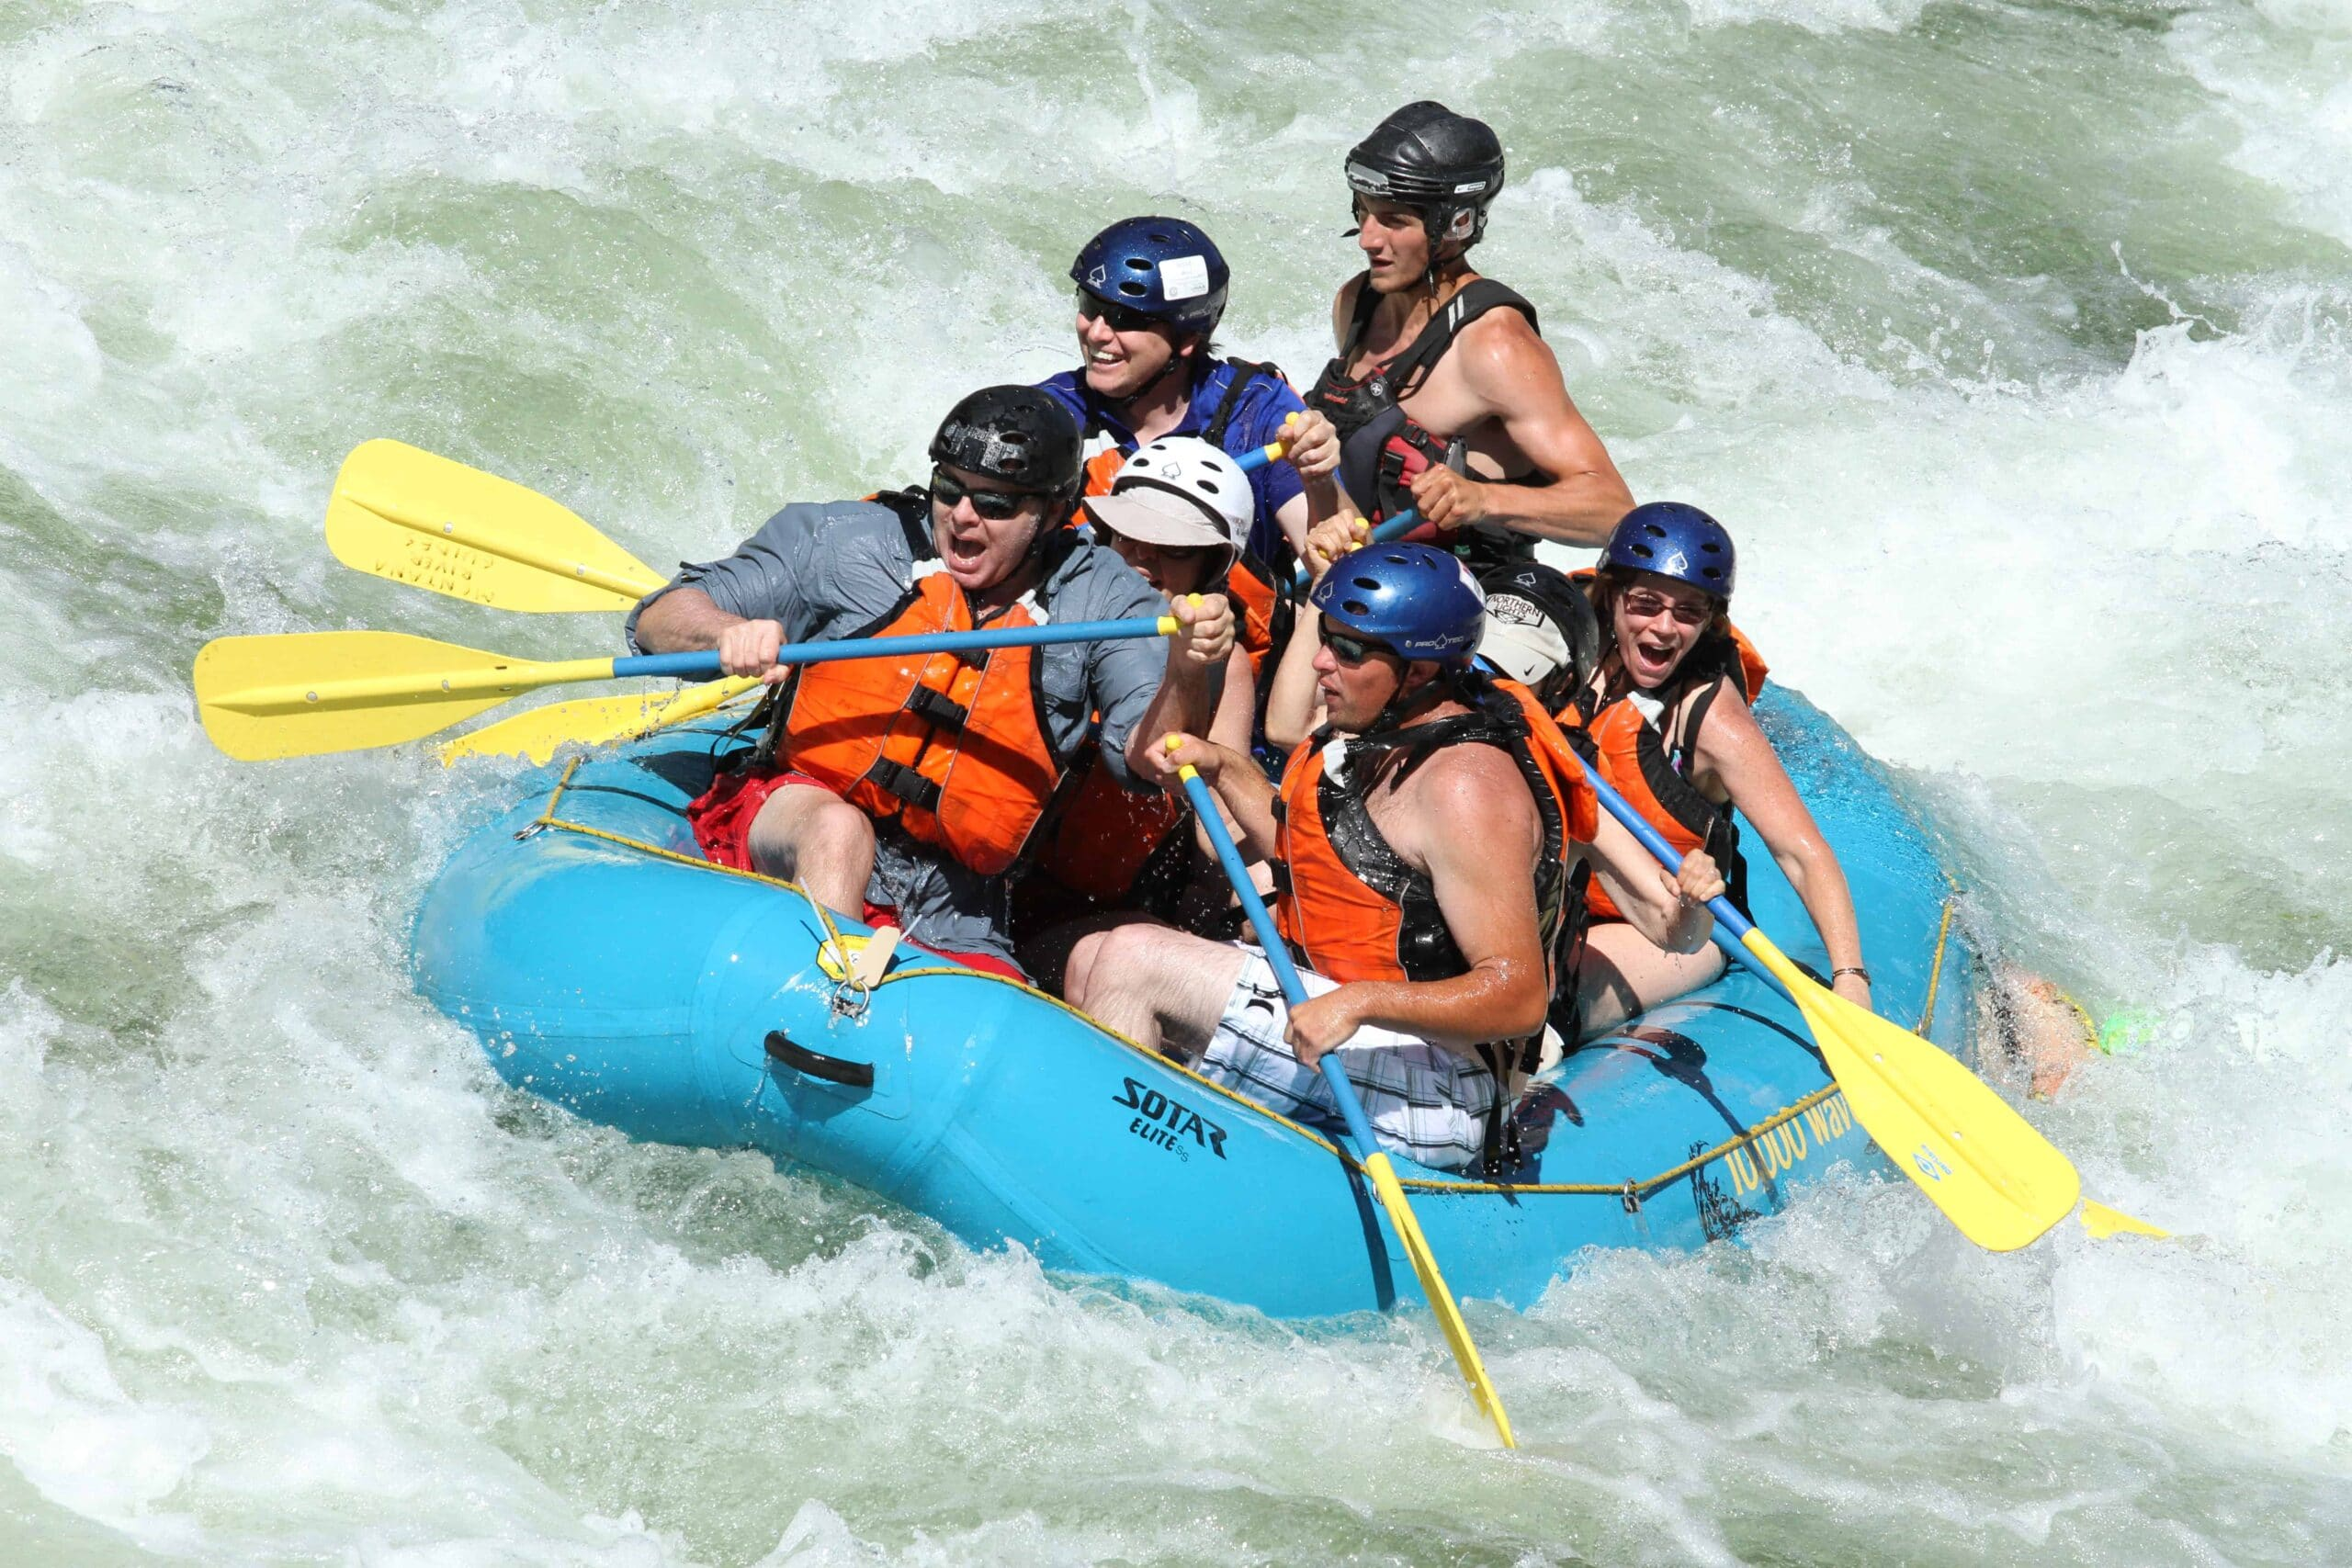 Missoula rafting adventure on the Clark Fork River near Missoula